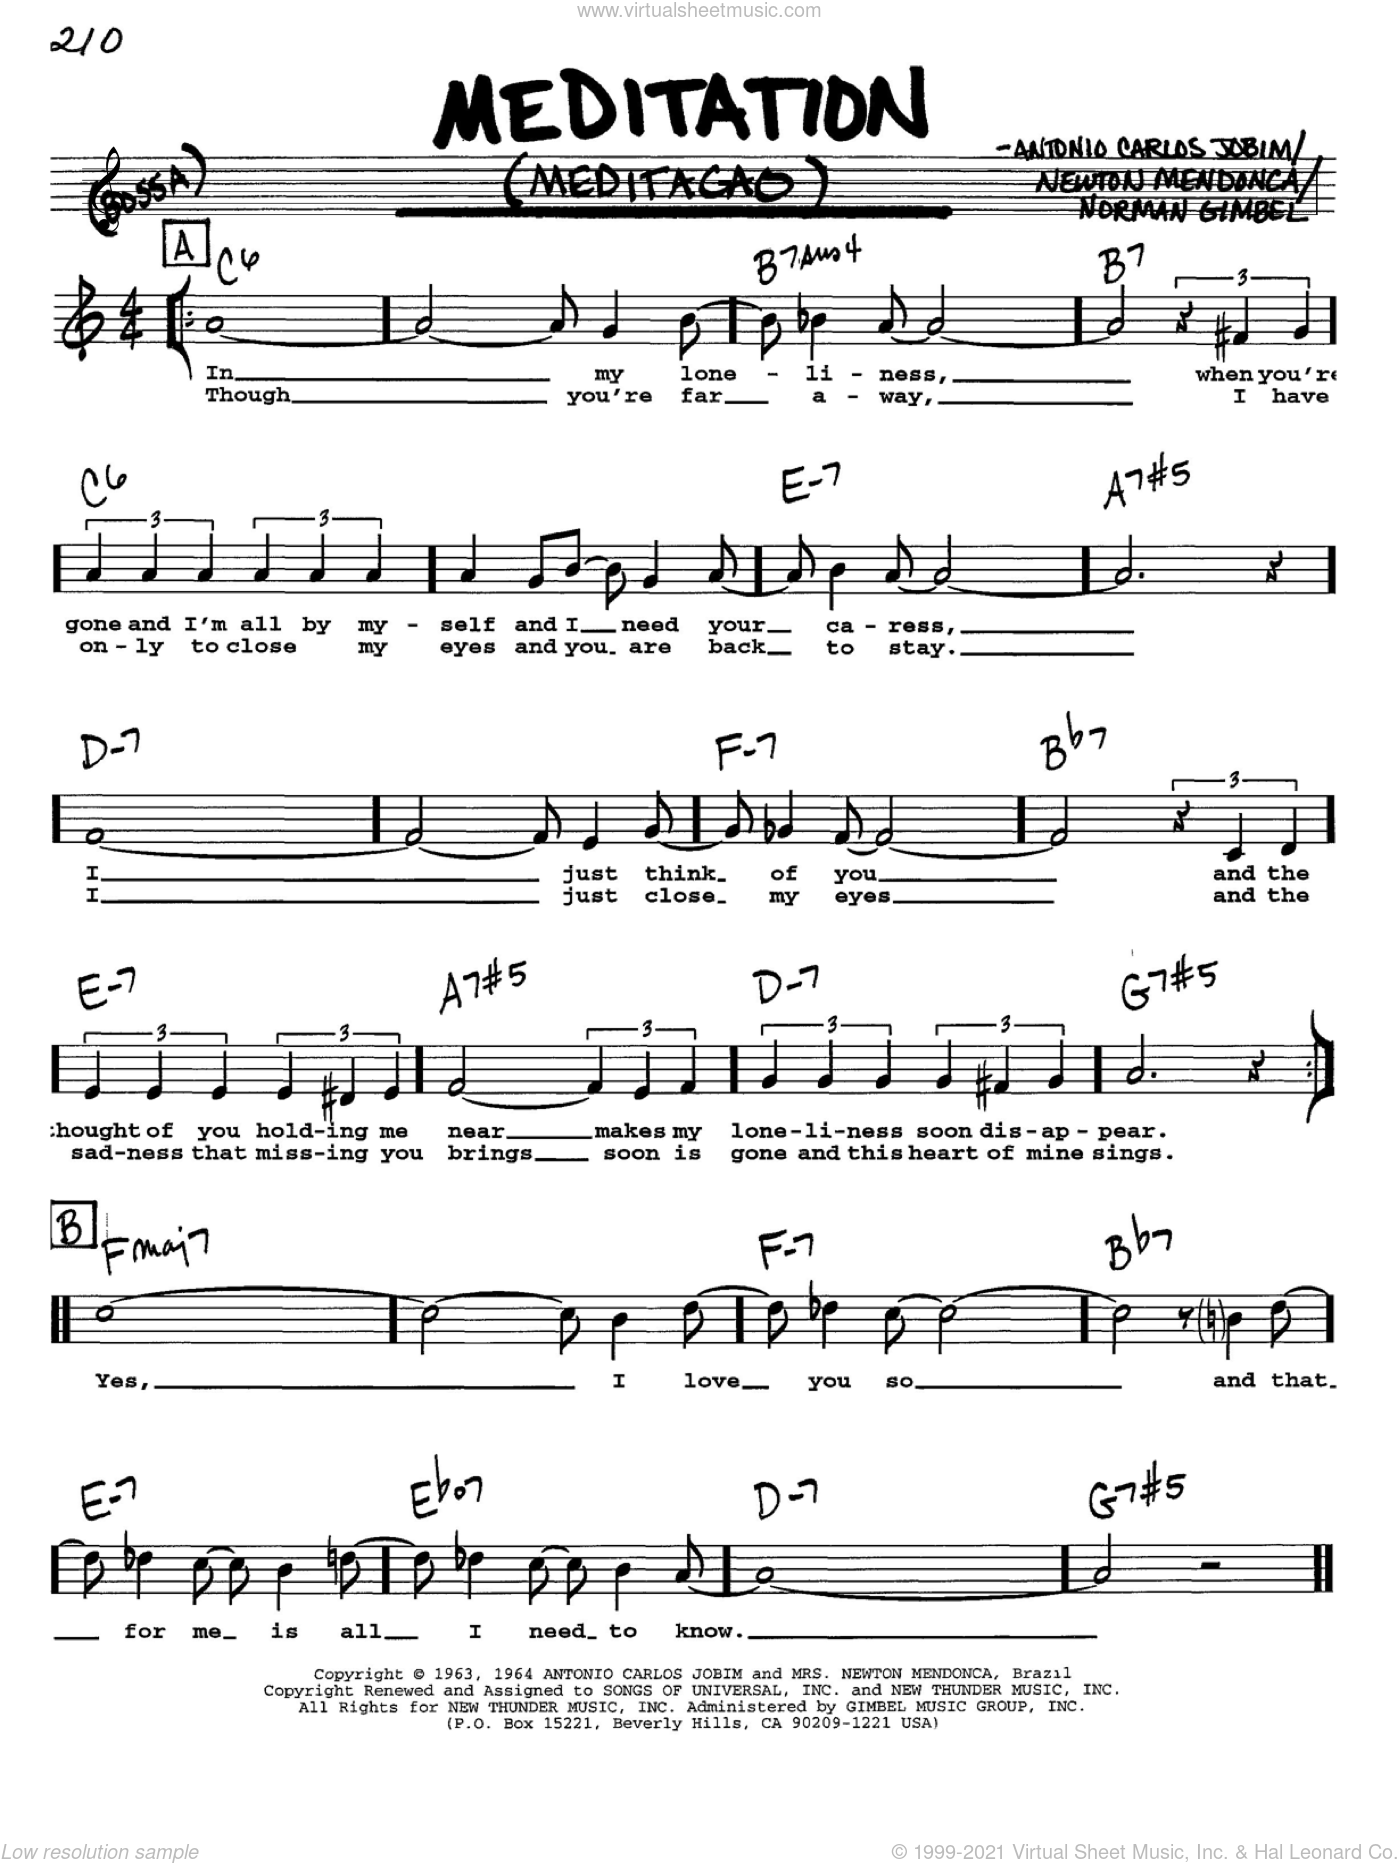 Meditation (Meditacao) sheet music for voice and other instruments  by Antonio Carlos Jobim, Newton Mendonca and Norman Gimbel, intermediate